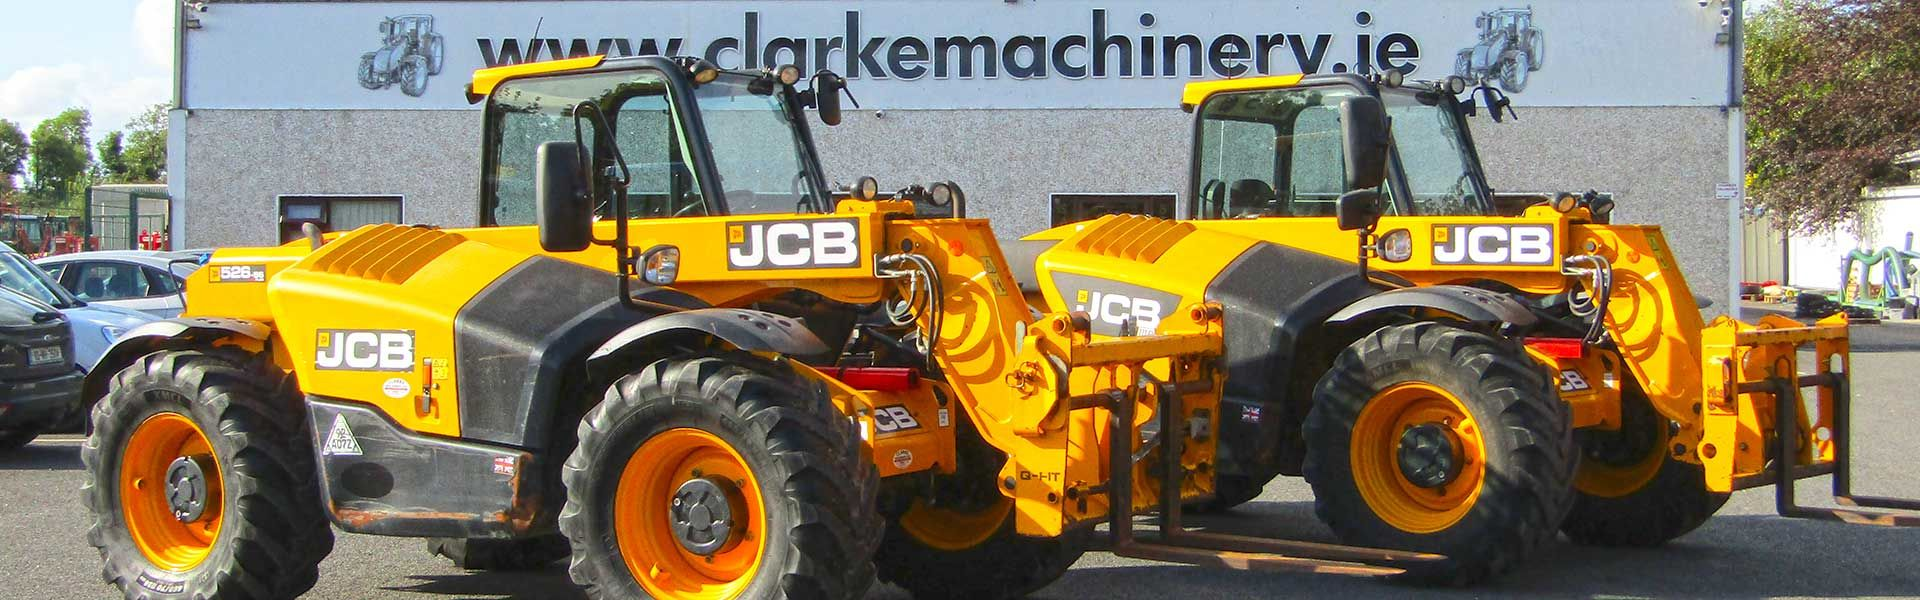 Clarke Machinery Ireland